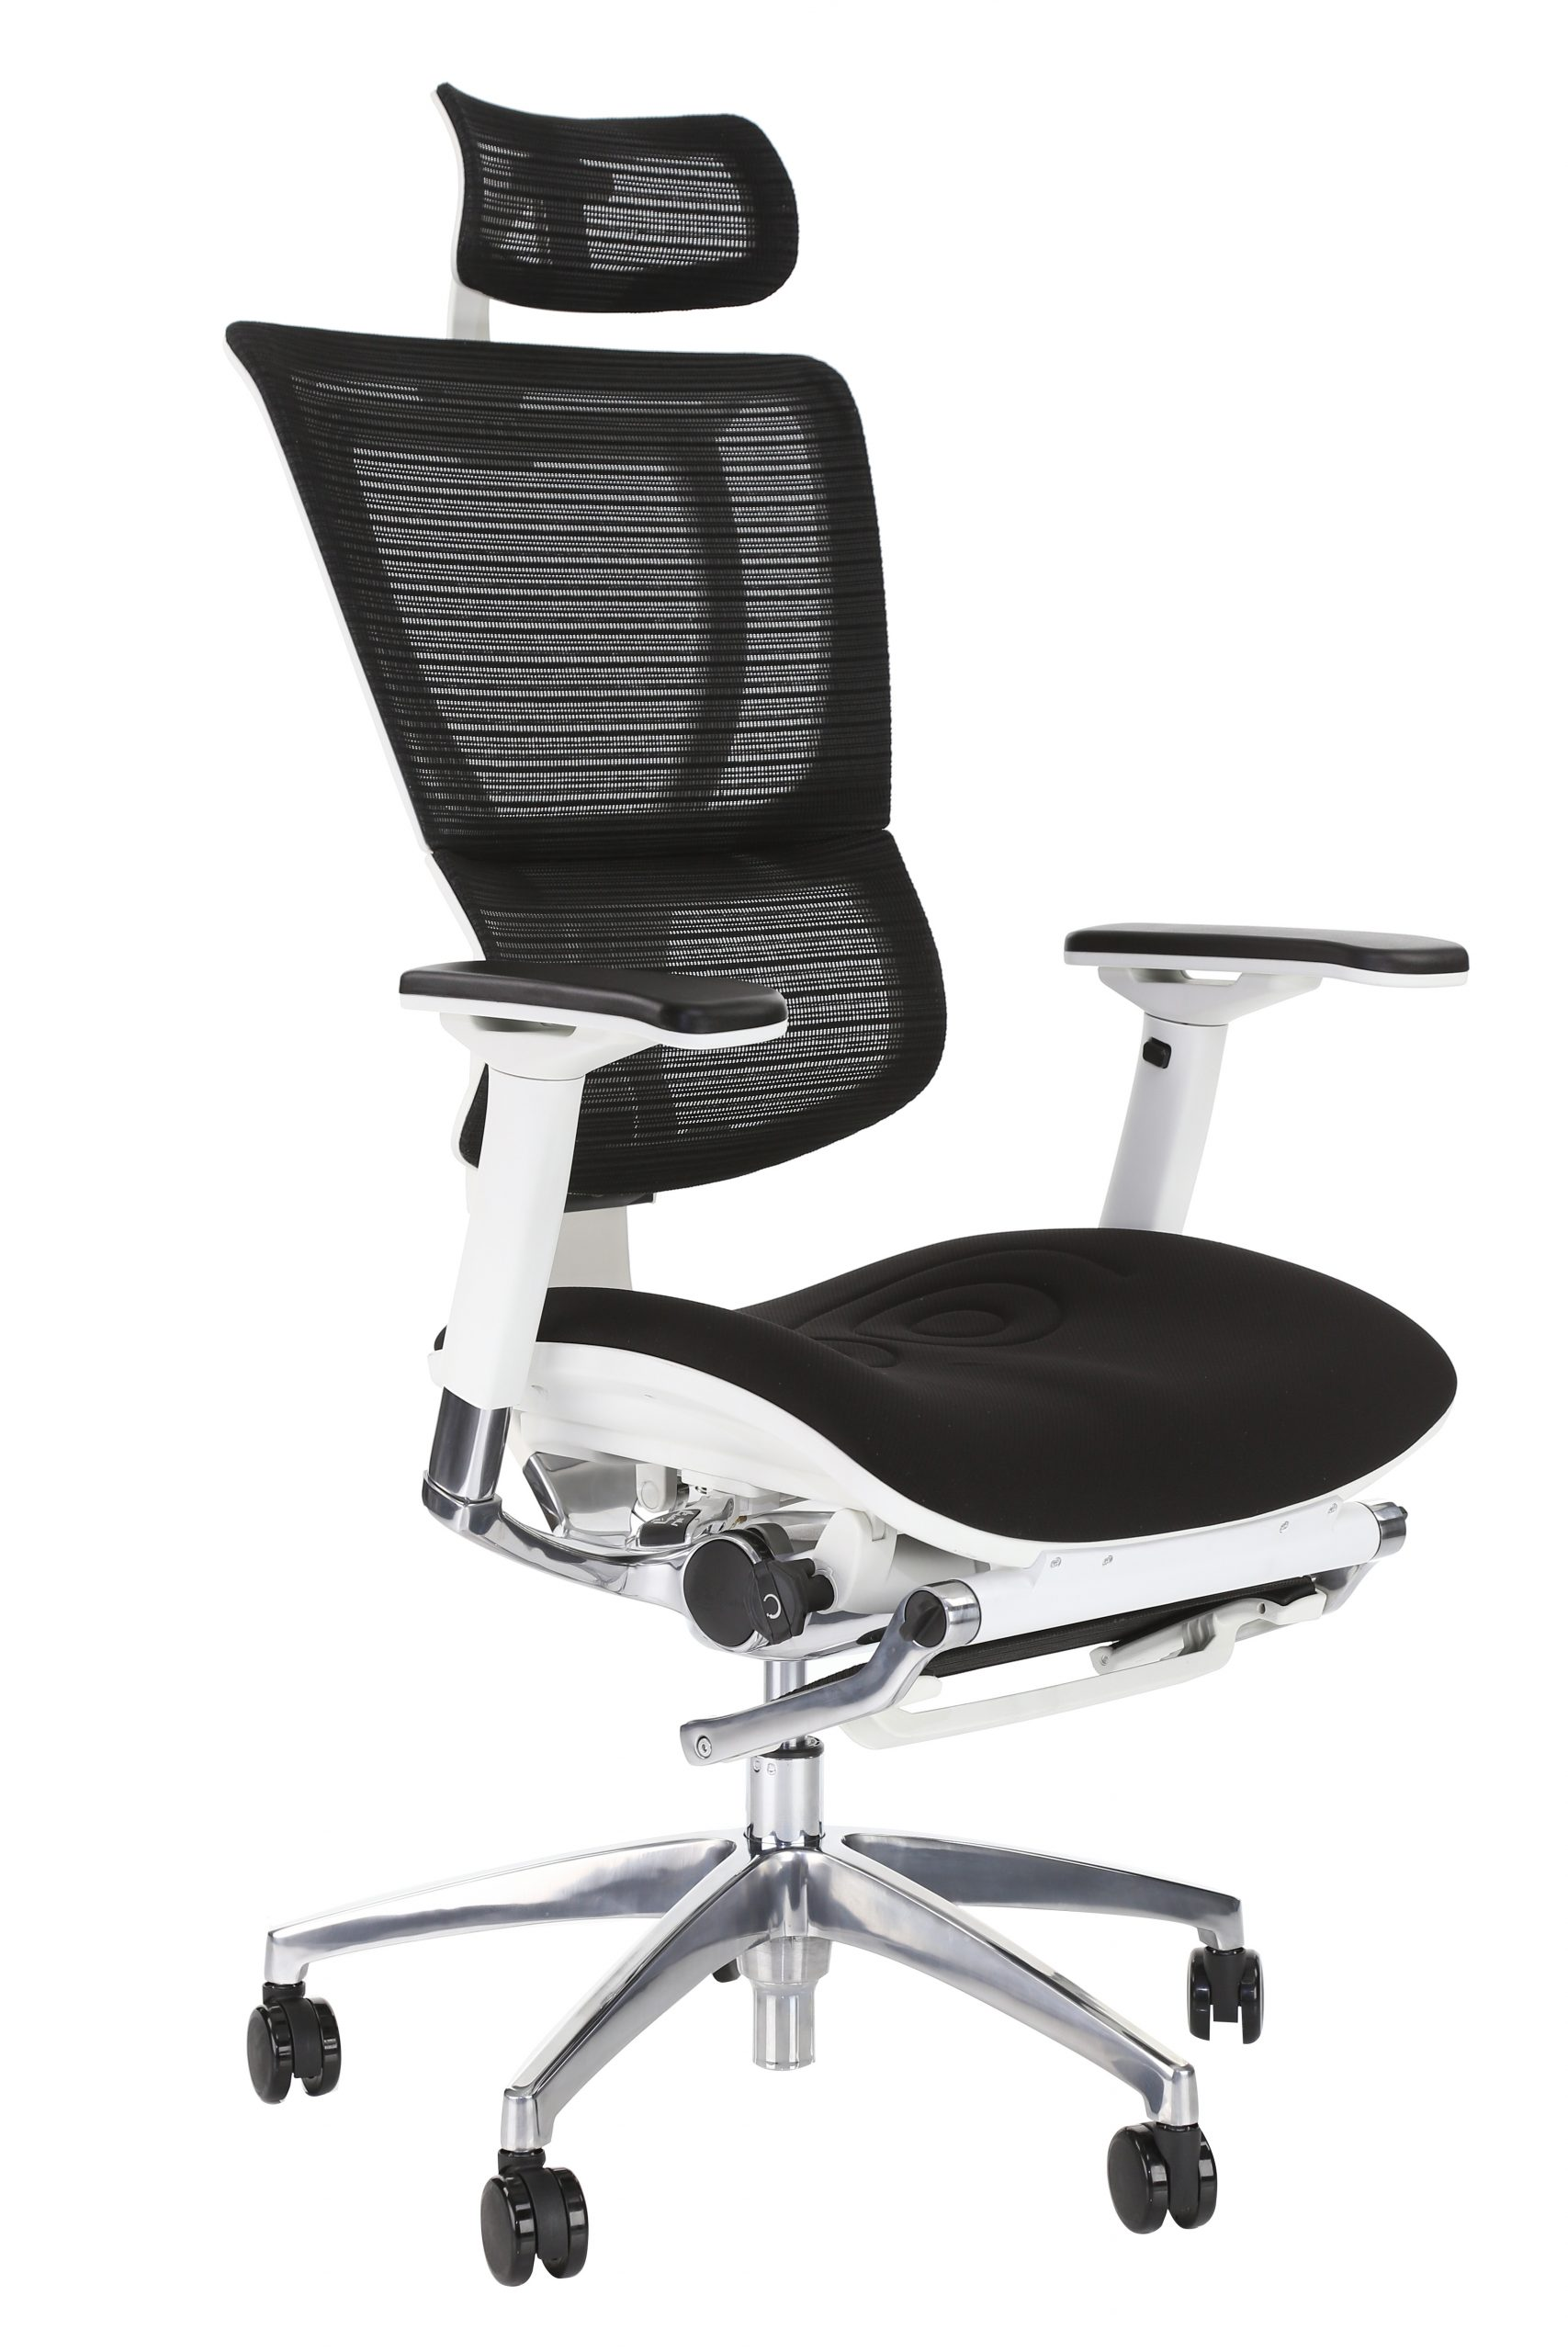 IOO High Back ergonomic office chair with leg-rest